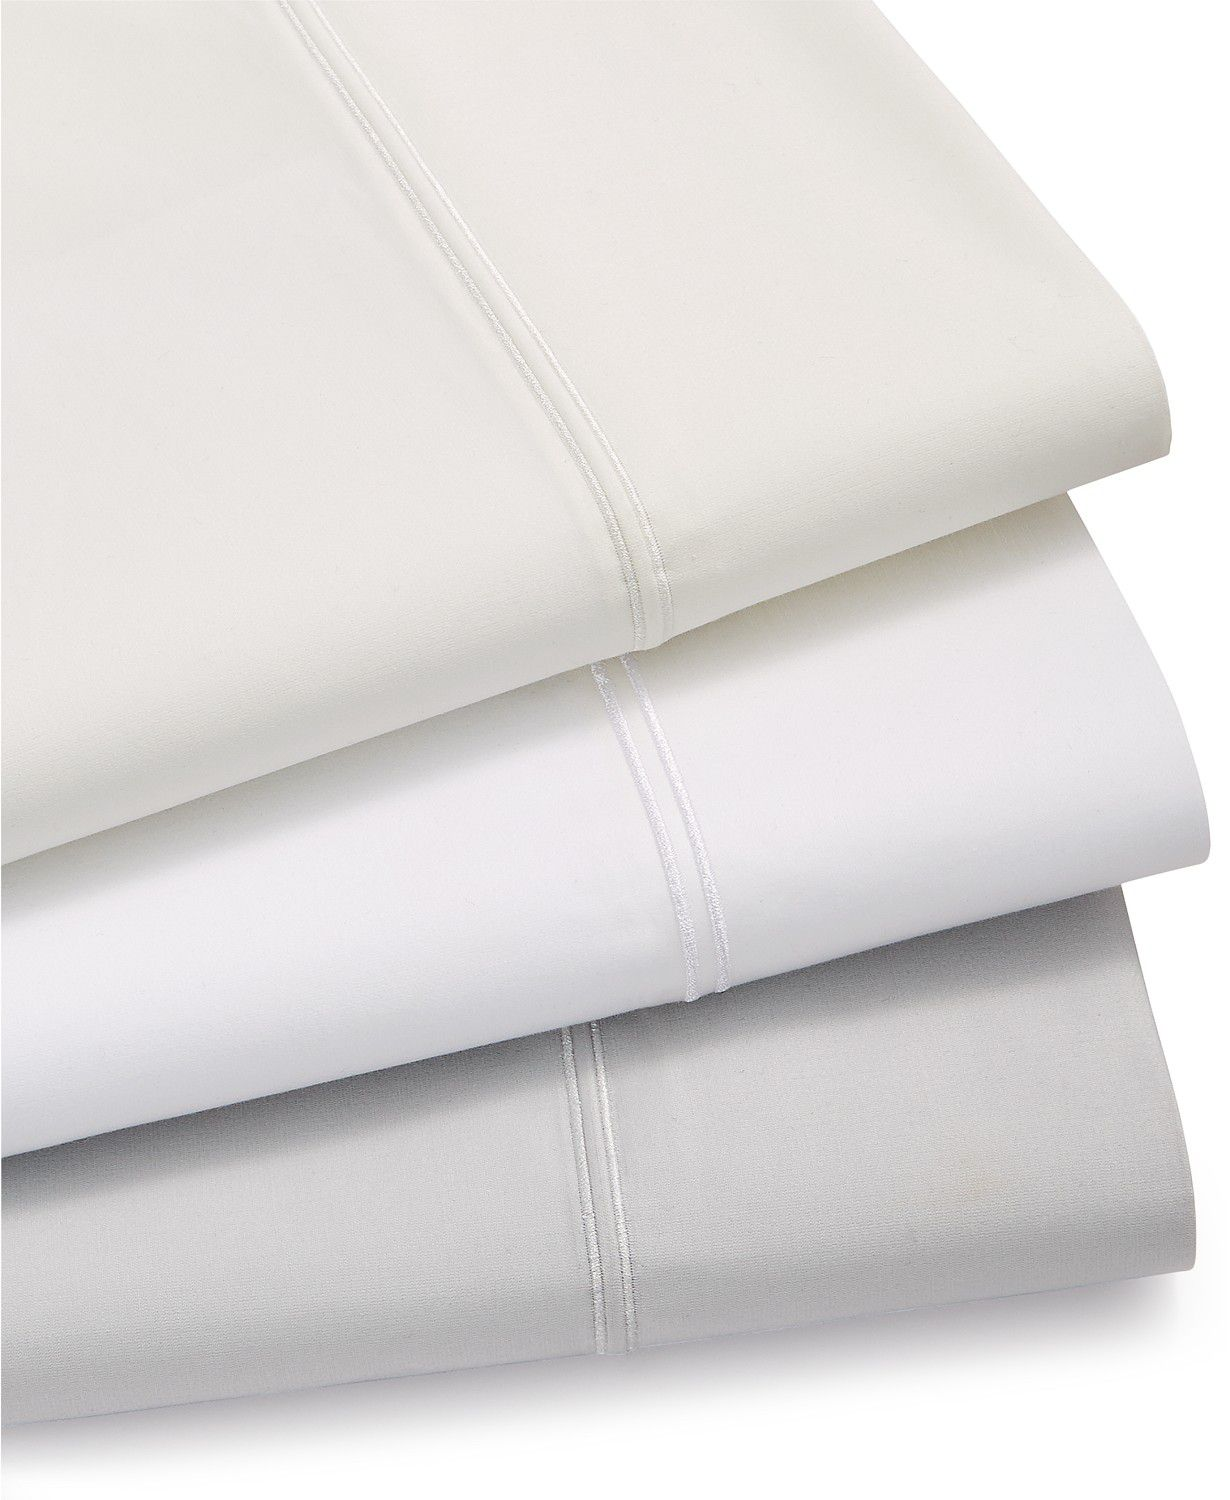 Hotel Collection 1000 Thread Count Sheets